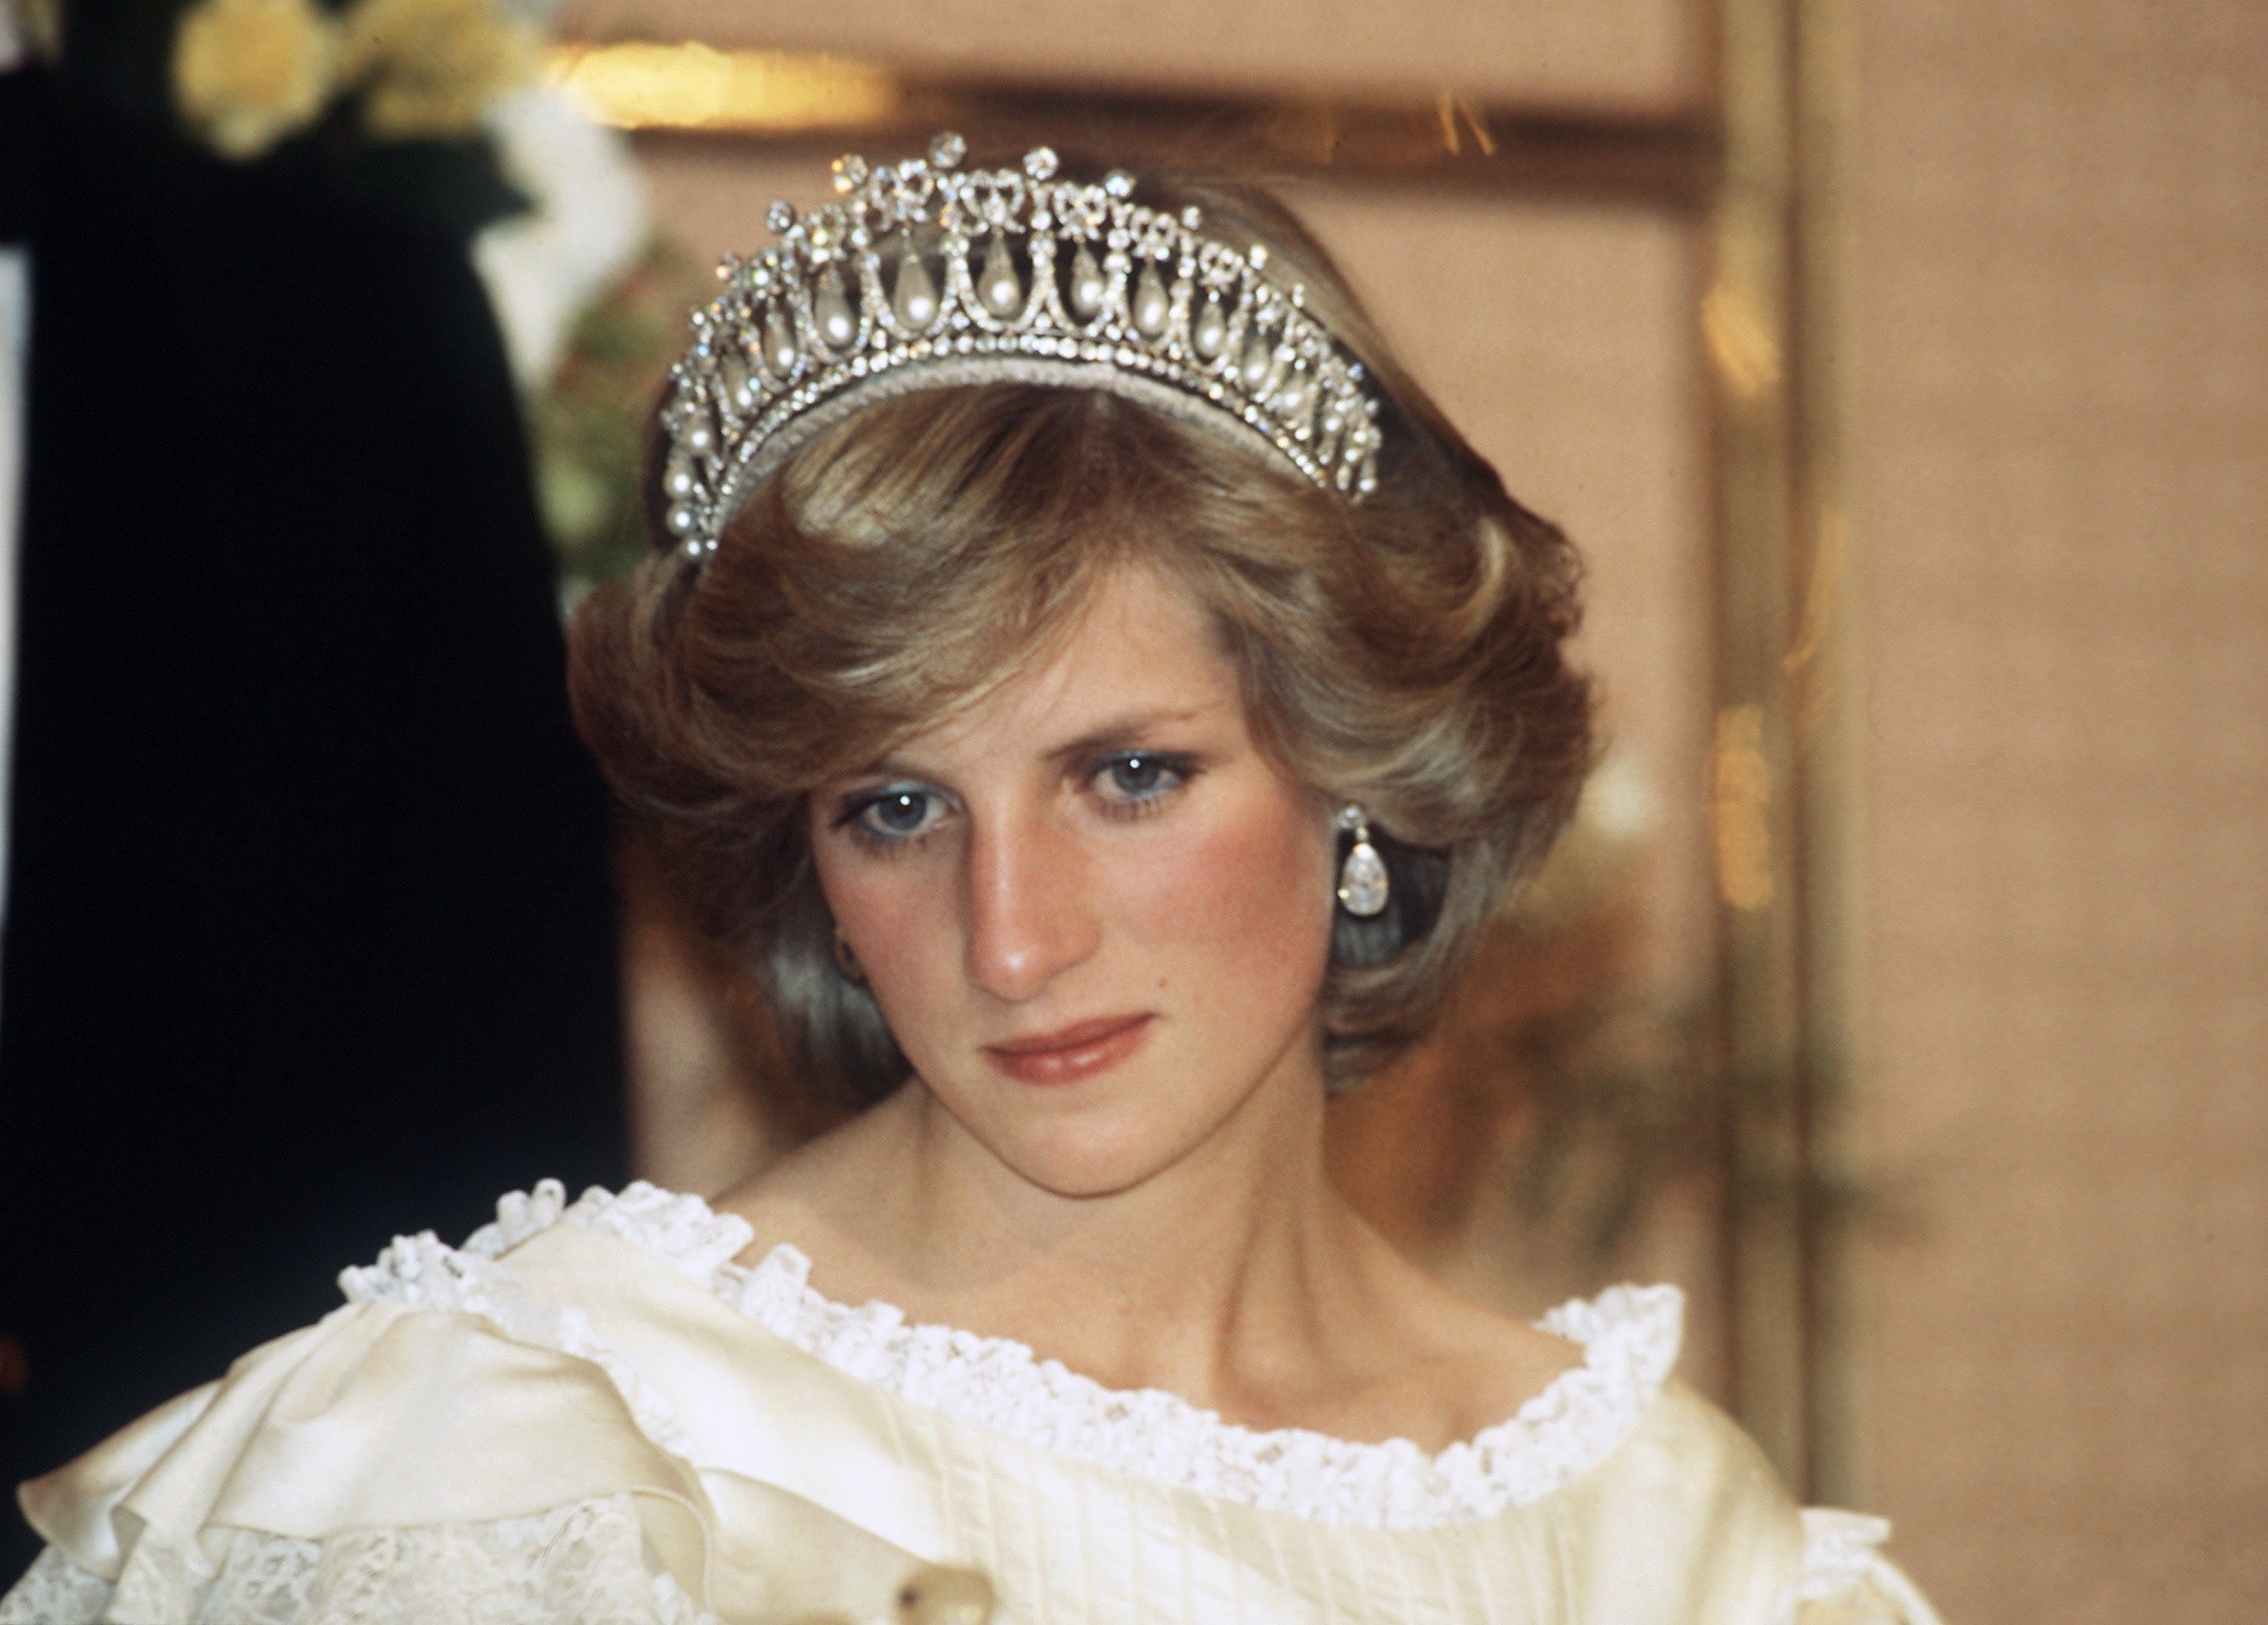 The late Princess Diana | Photo: Getty Images